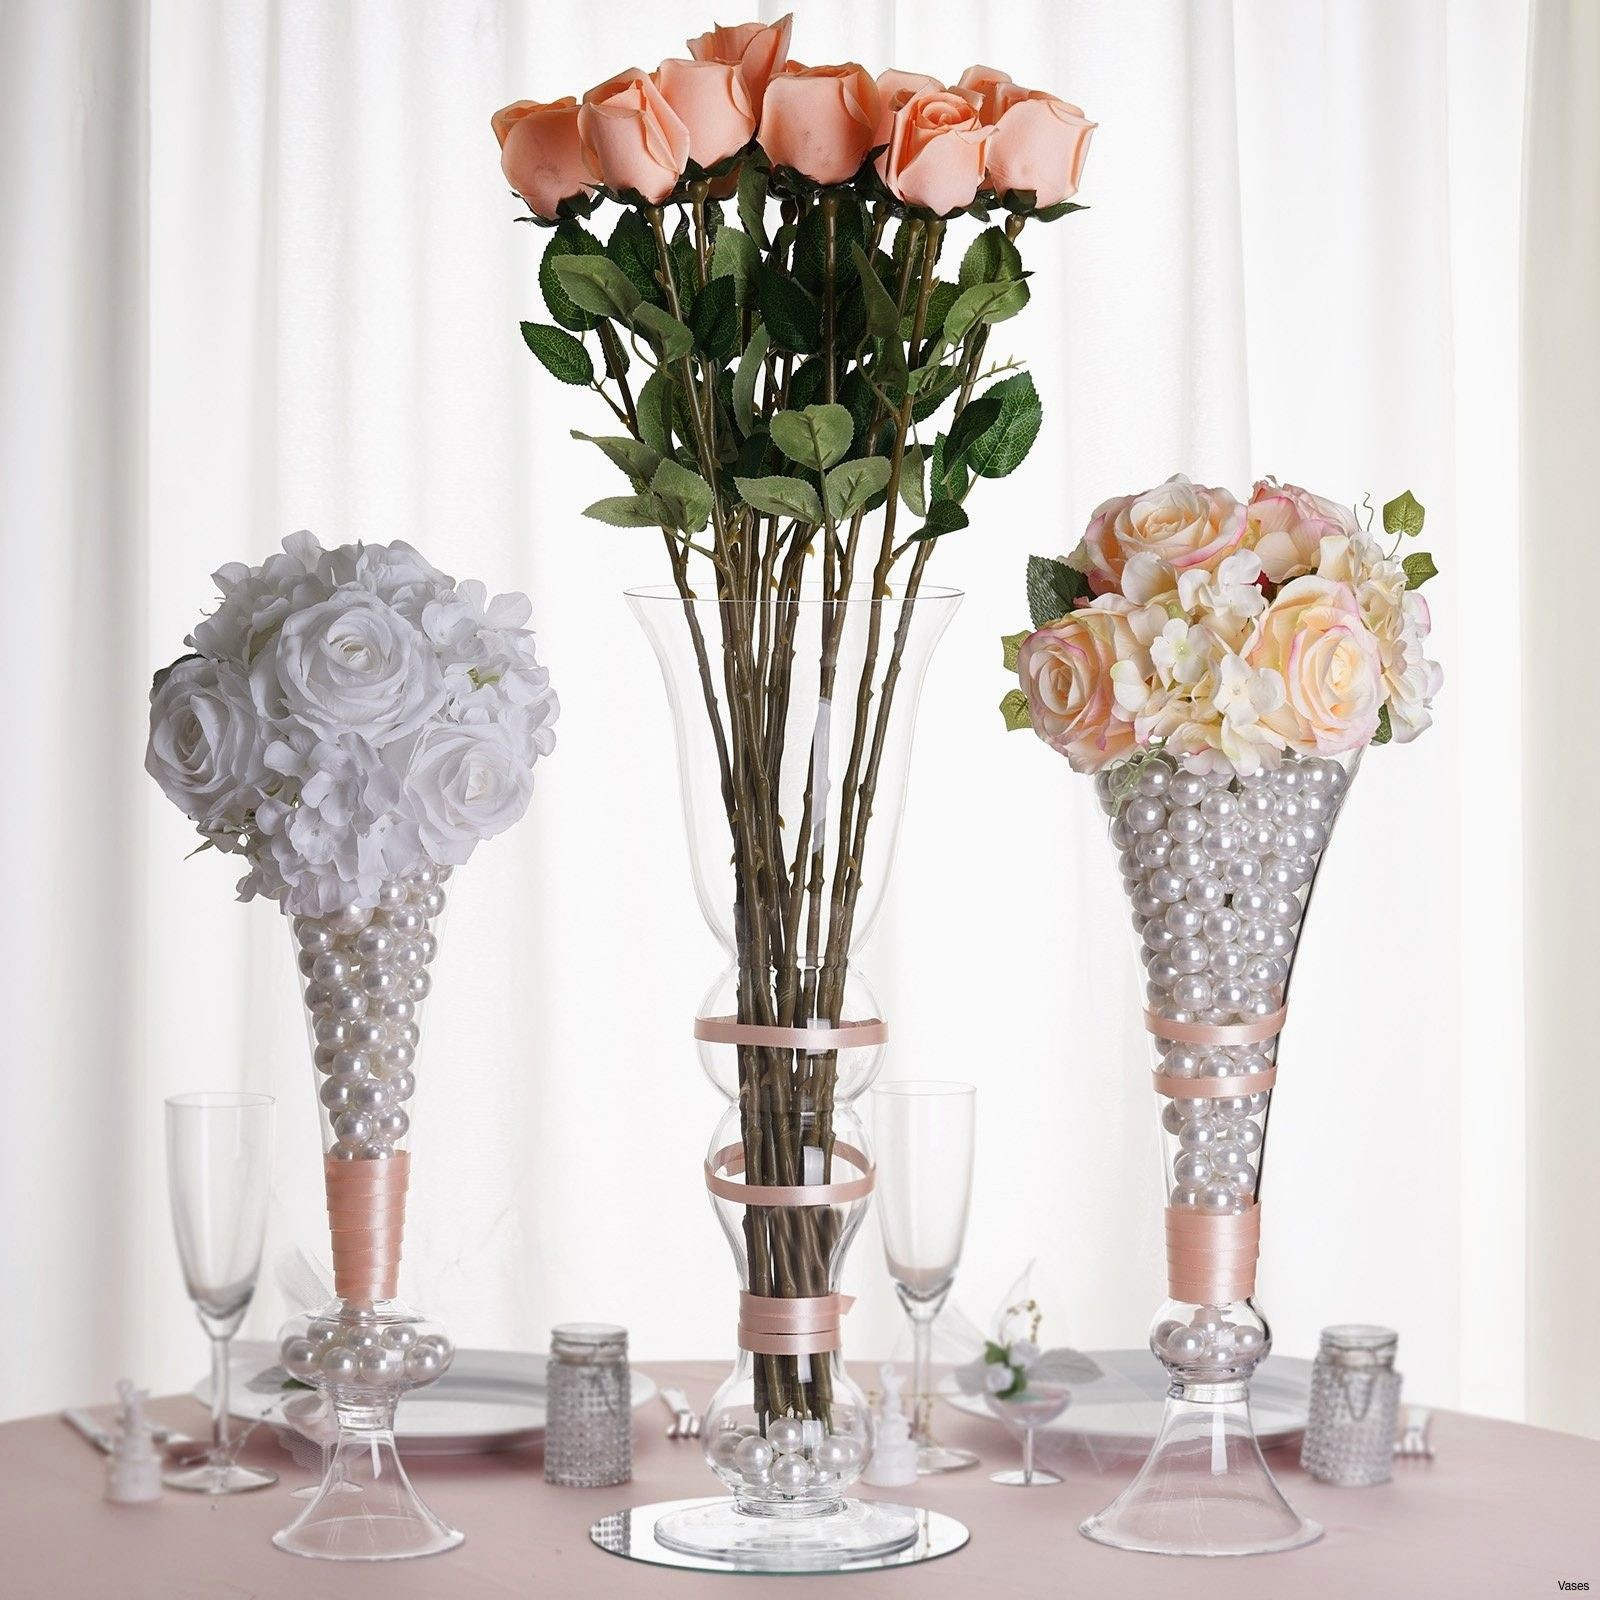 cyan design vases of 31 how to keep roses alive in a vase the weekly world with 17 elegant artificial flowers for dining table stampler